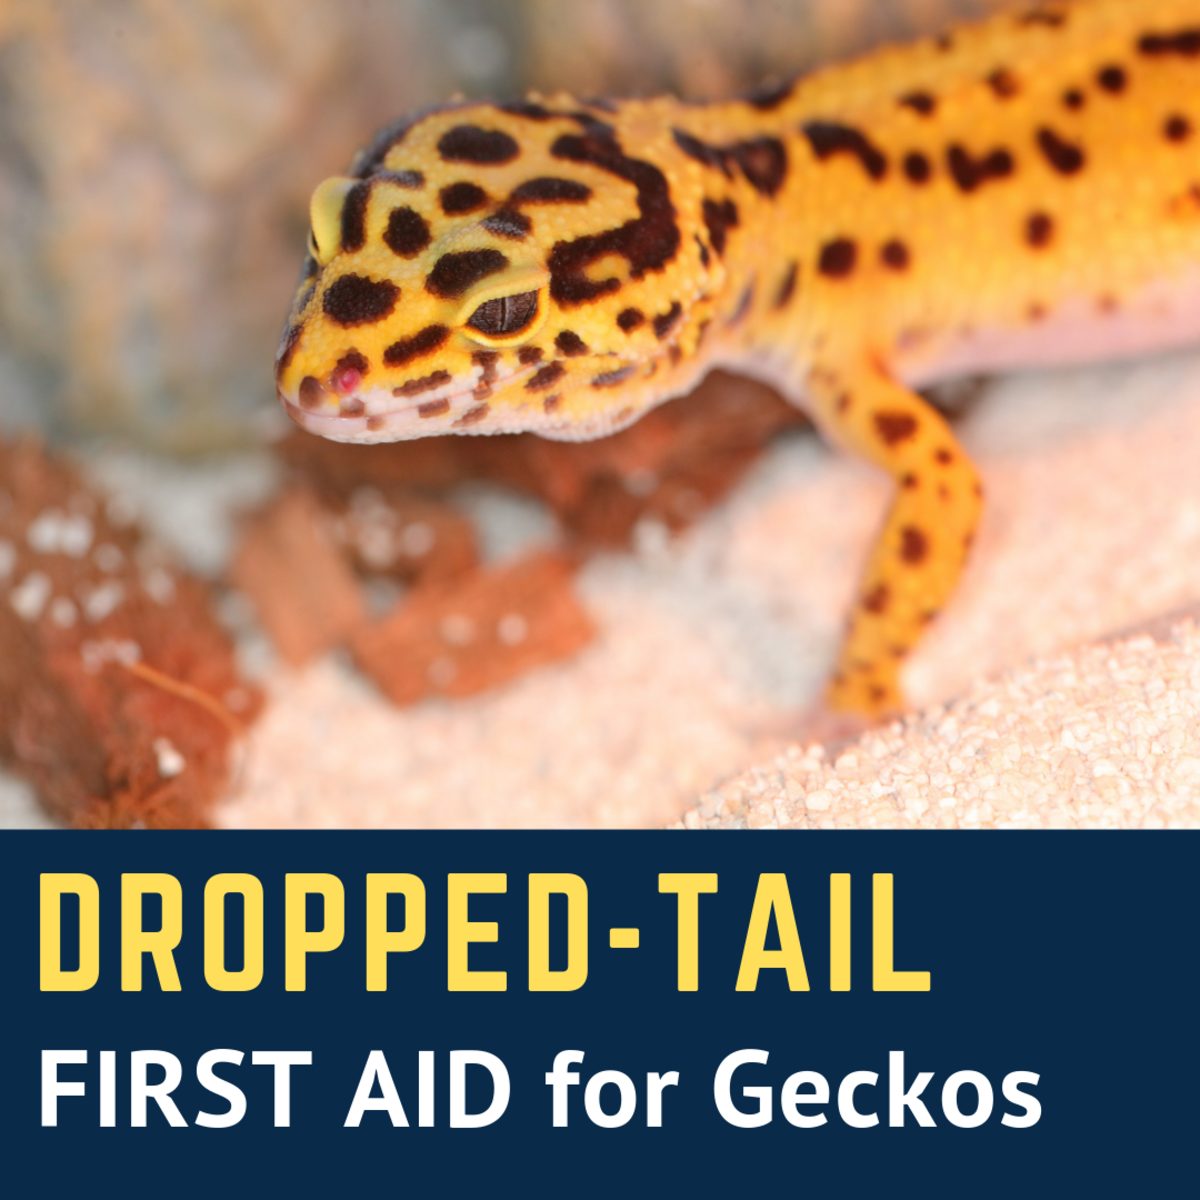 Dropped Tails in Geckos